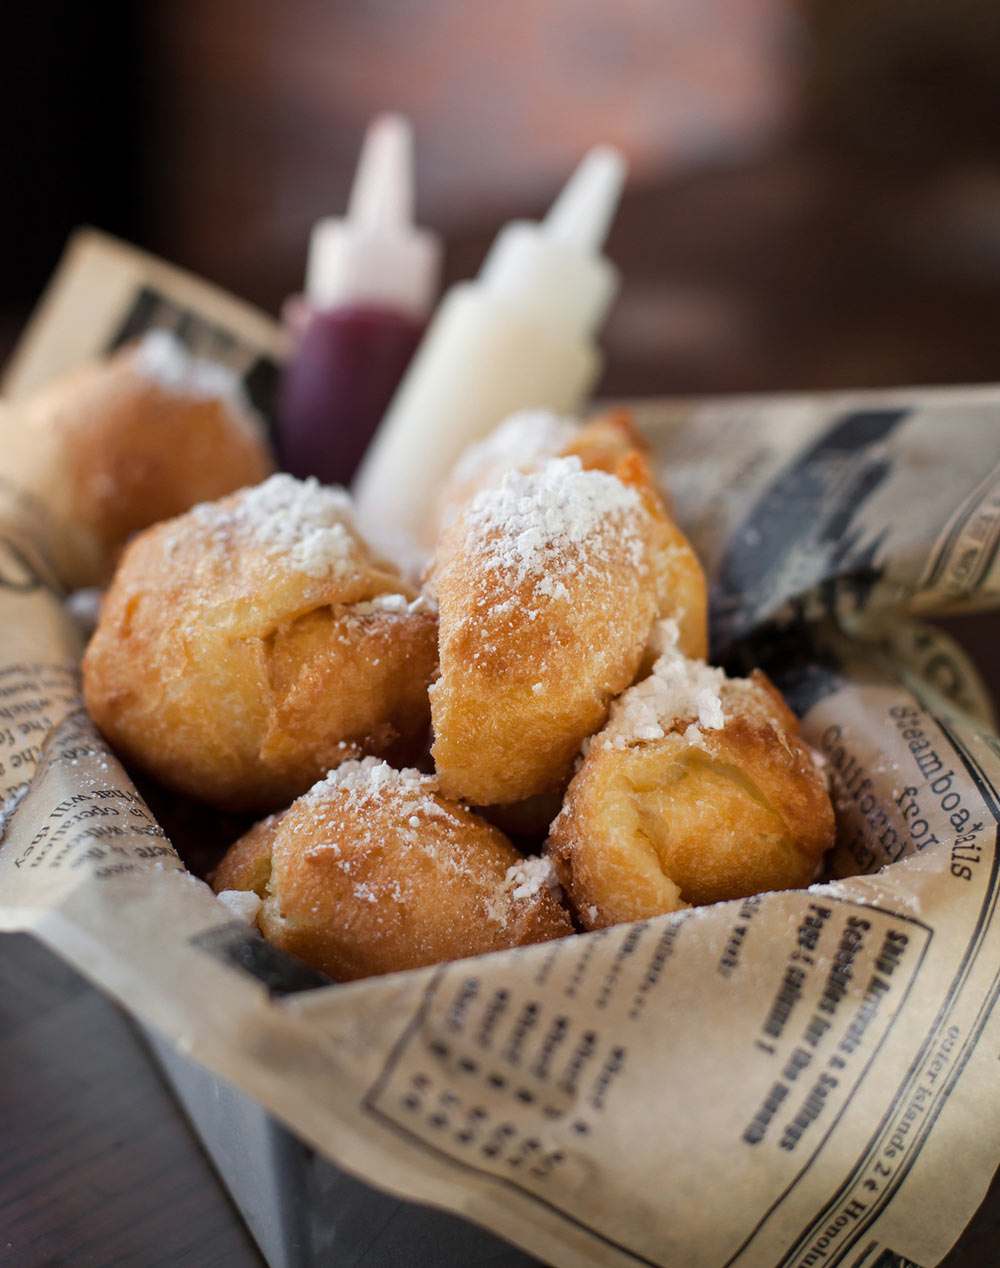 Food_photography_Beignet_Dipping_Sauce_Newspaper_Plating_French_Pastery_Powdered_Sugar.jpg